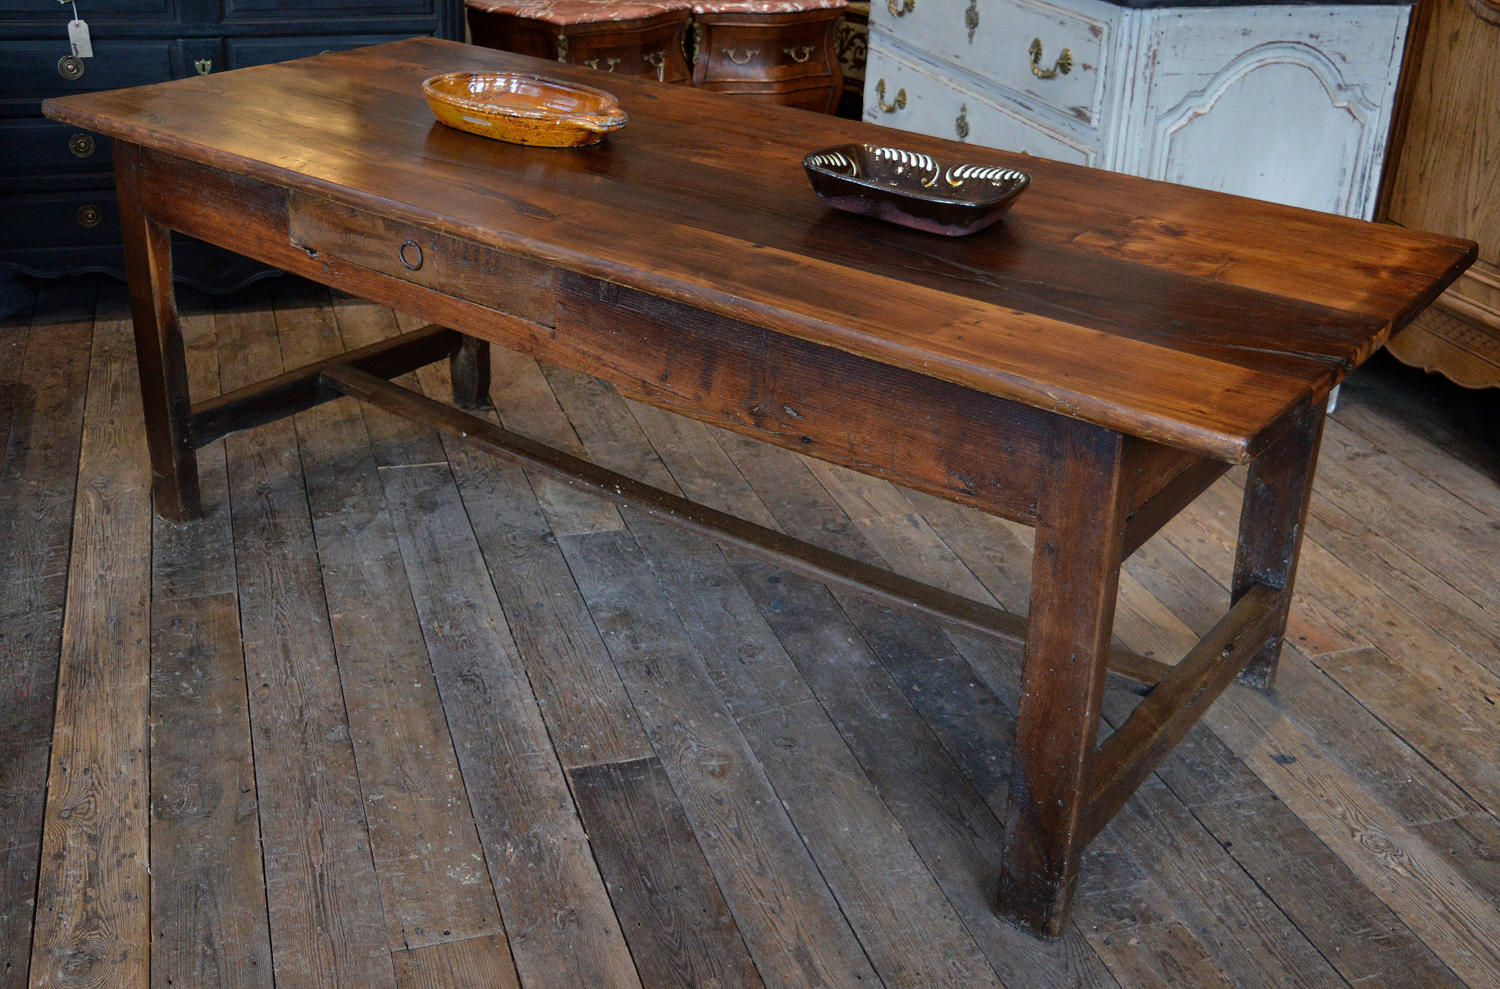 19th Century Breton Chestnut Table